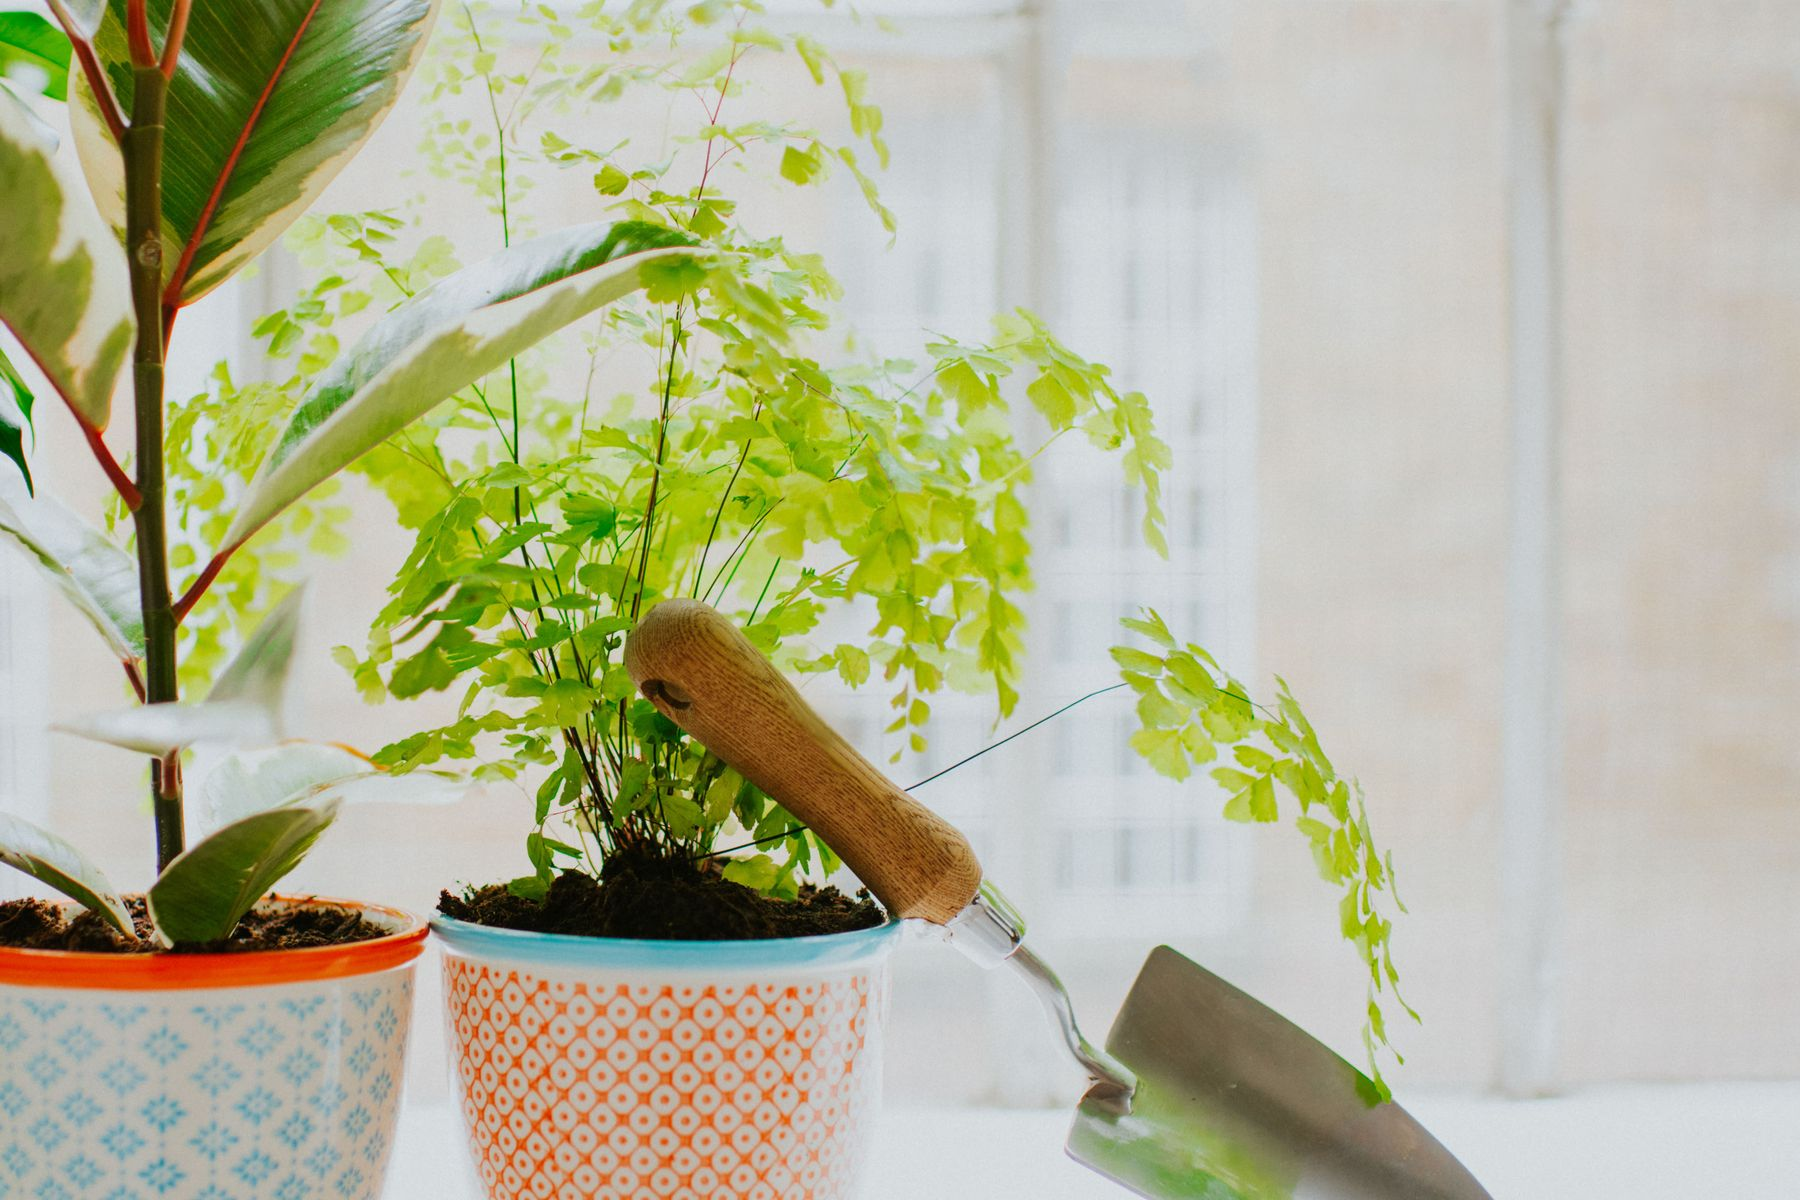 Plants and foliage with a garden spade for a DIY terrarium